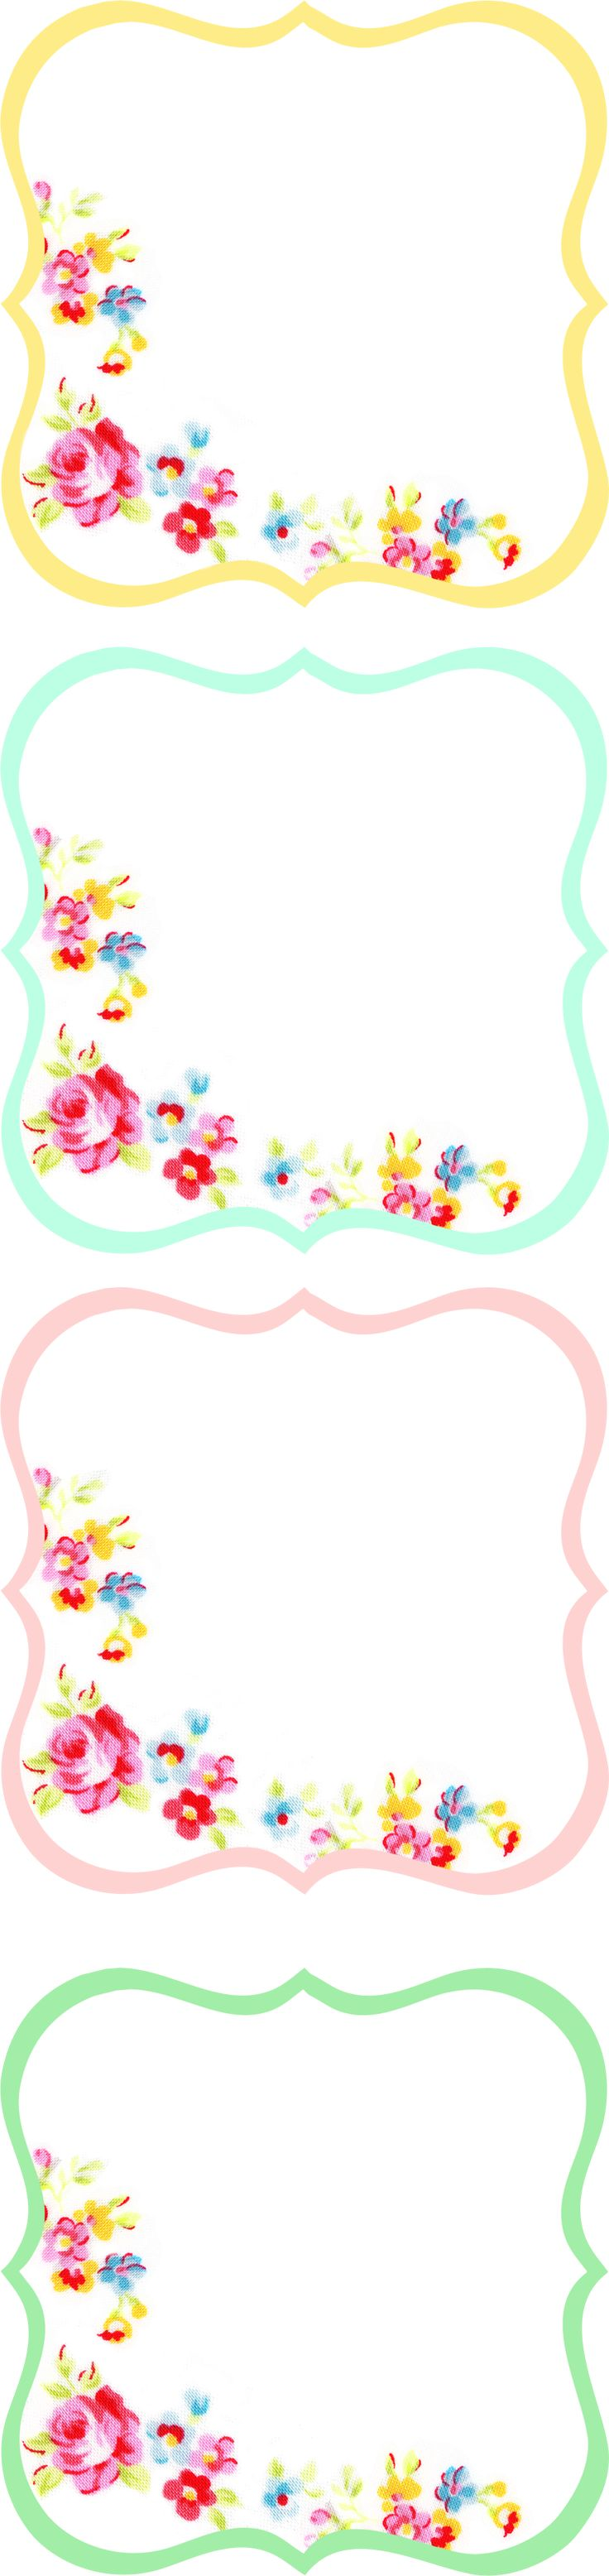 Shabby_labels_set_2_FPTFY_2.png (997×4216)